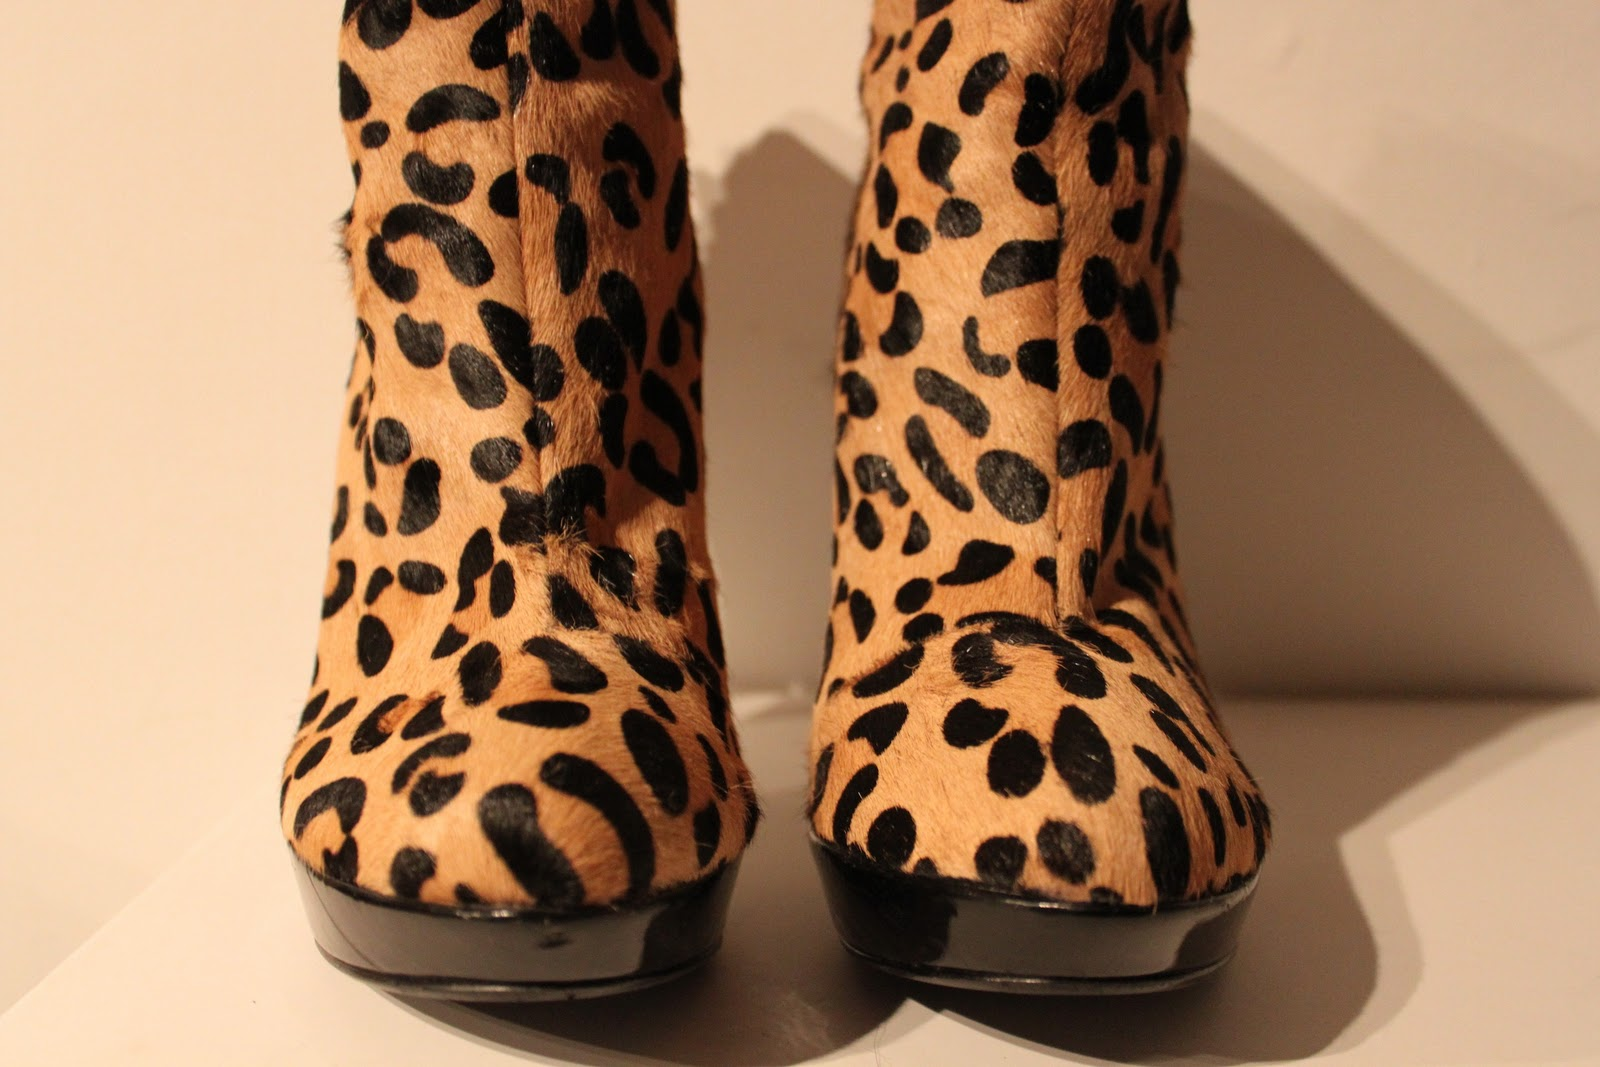 8f1908b2814f Dune leo pony skin booties with zipper in the back. Used only once inside,  so almost new uk 5 eur 38